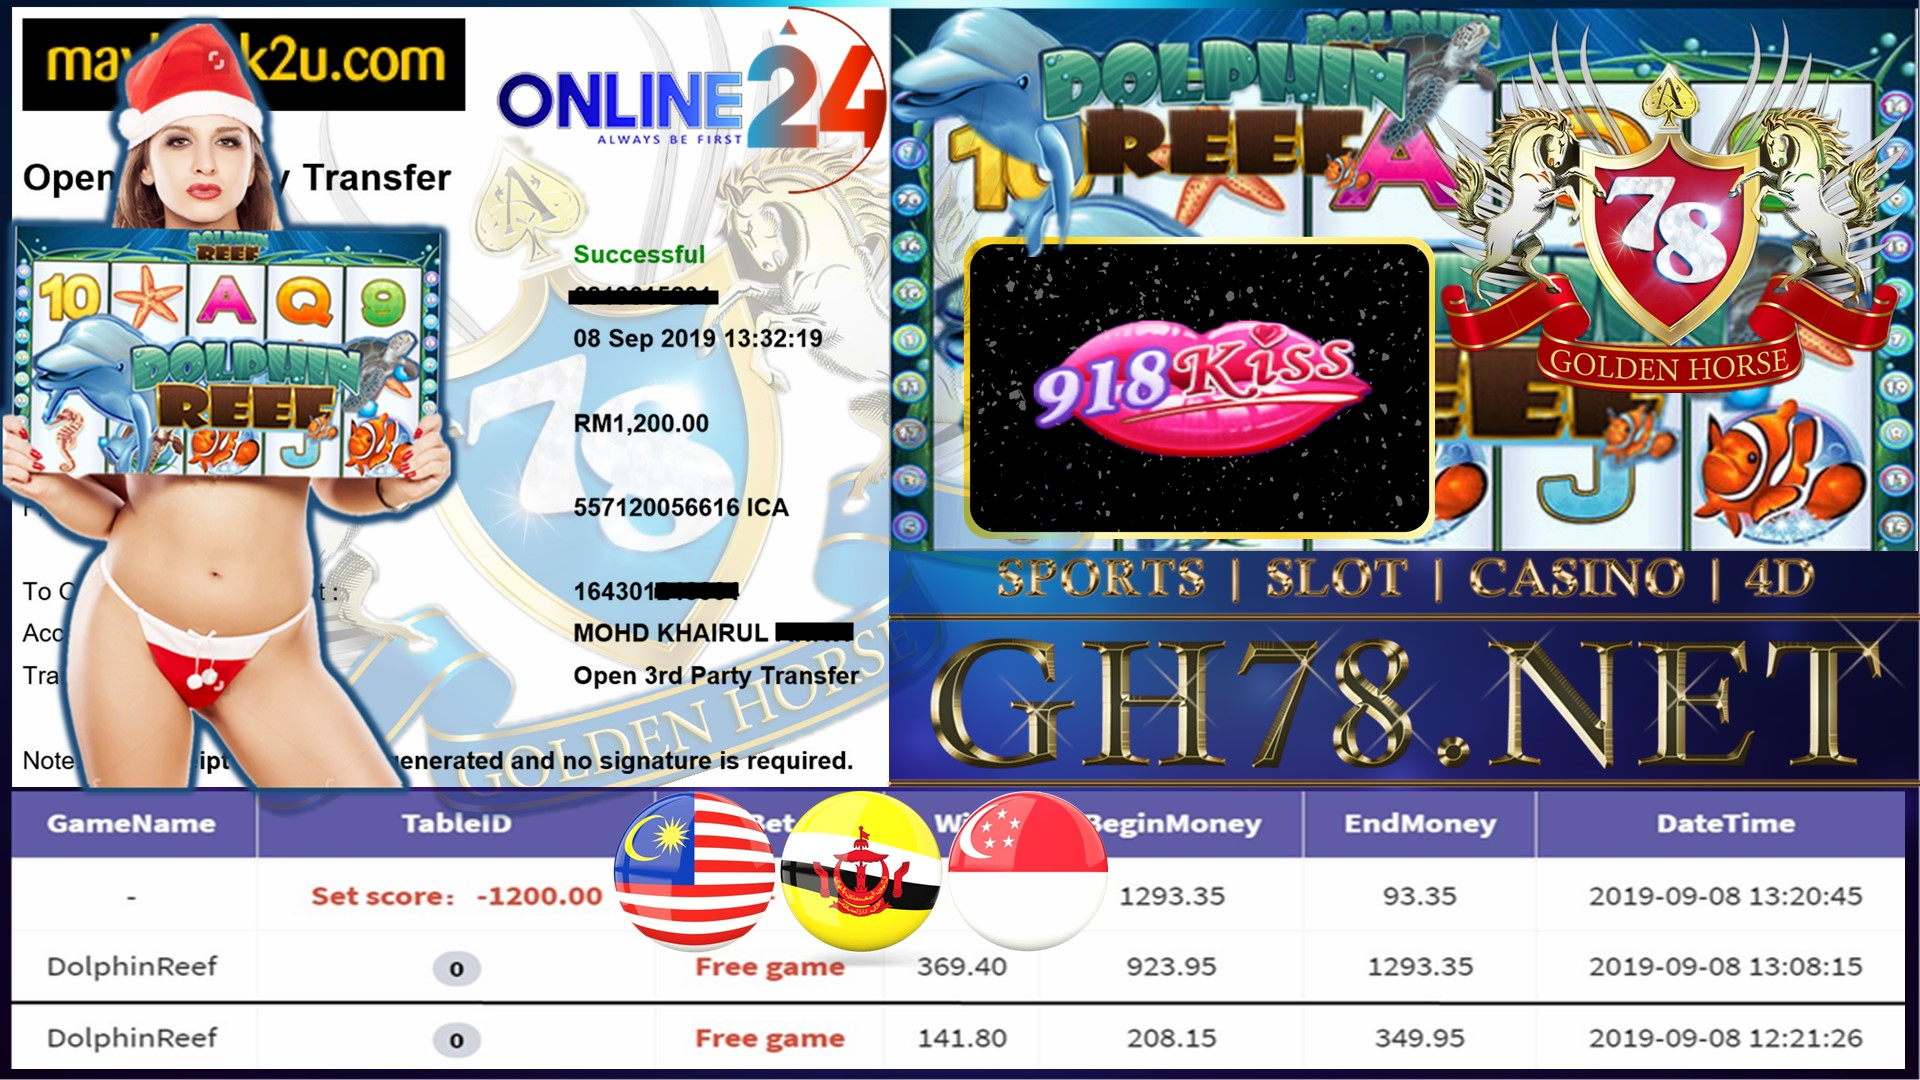 MEMBER MAIN GAME 918KISS FT.DOLPHIN REEF MINTA OUT RM1,200